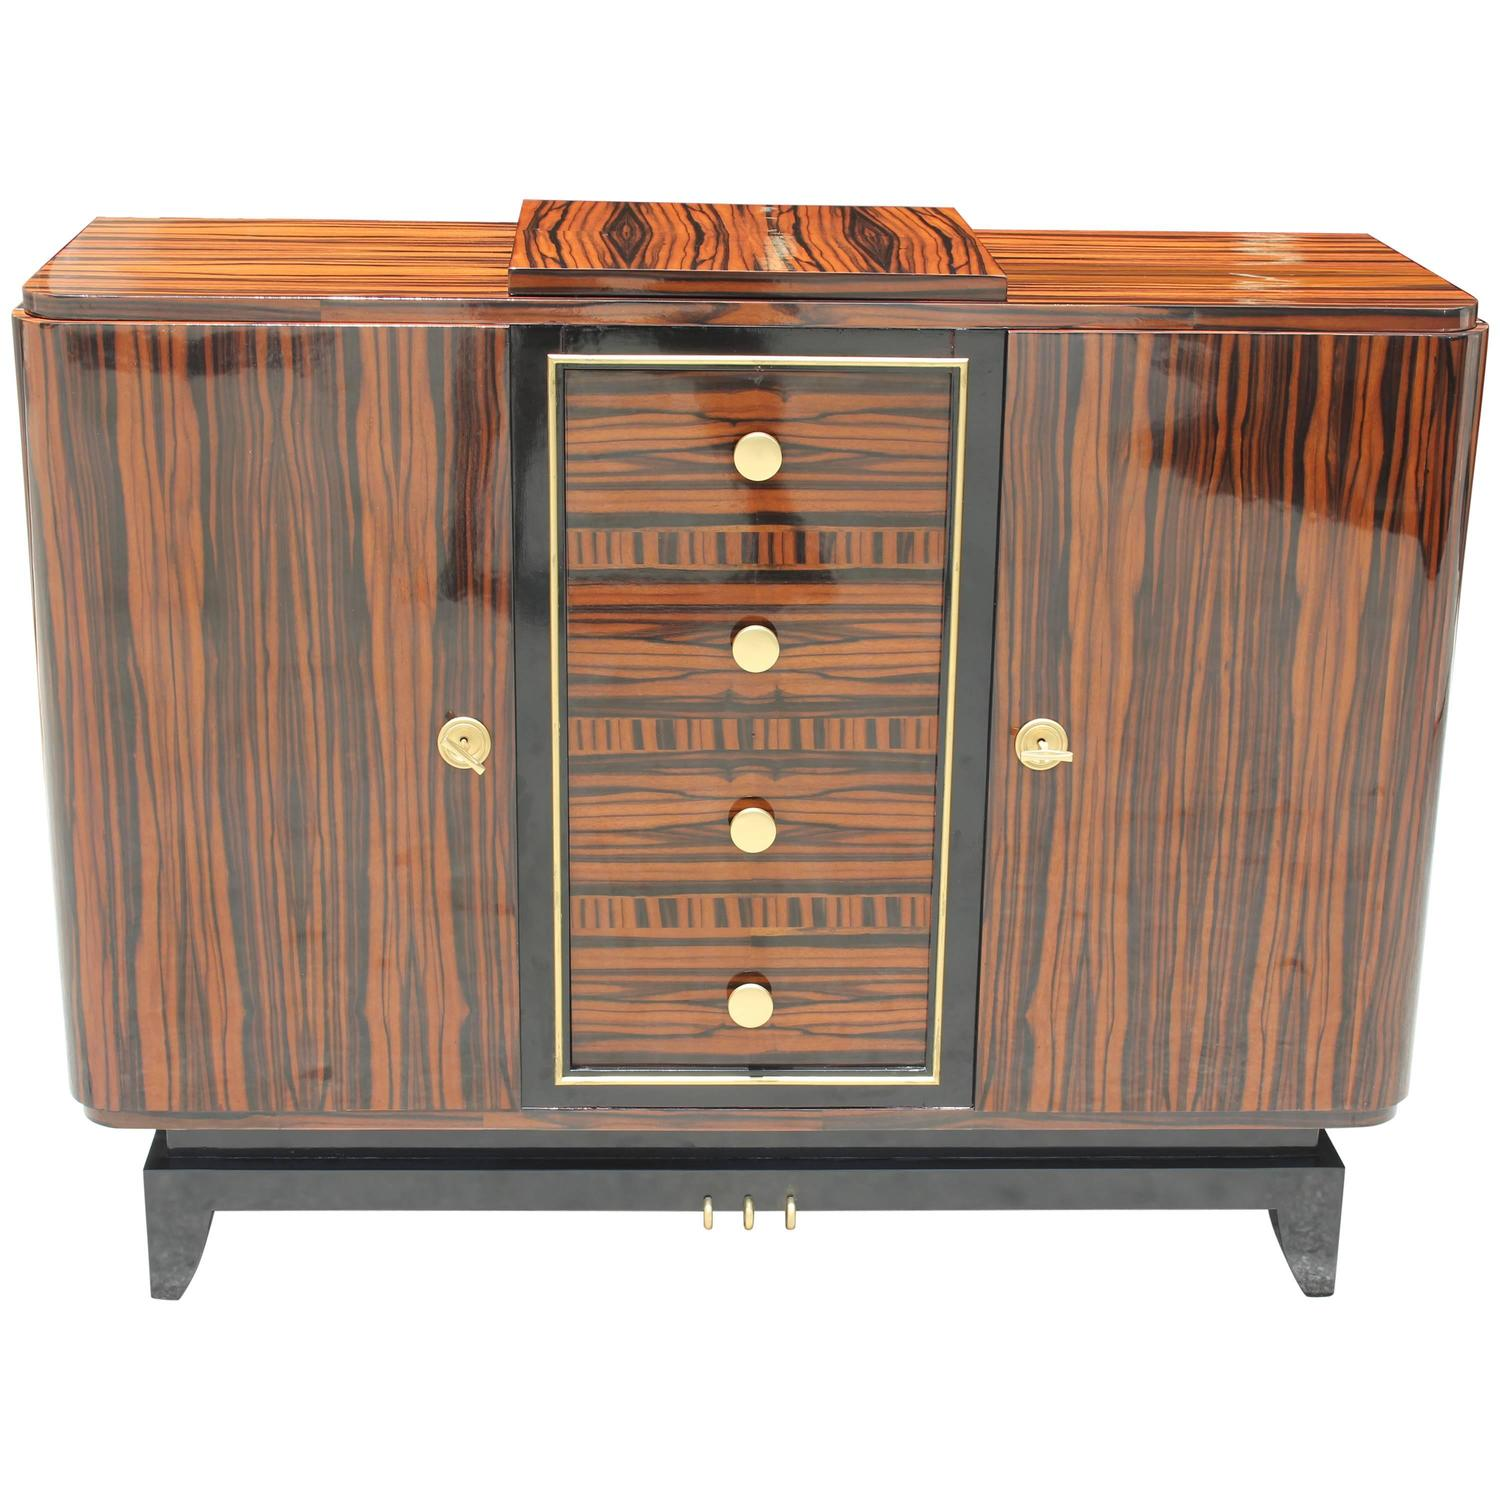 Sensational French Art Deco Exotic Macassar Ebony Buffet Dry Bar Circa 1940s At 1stdibs